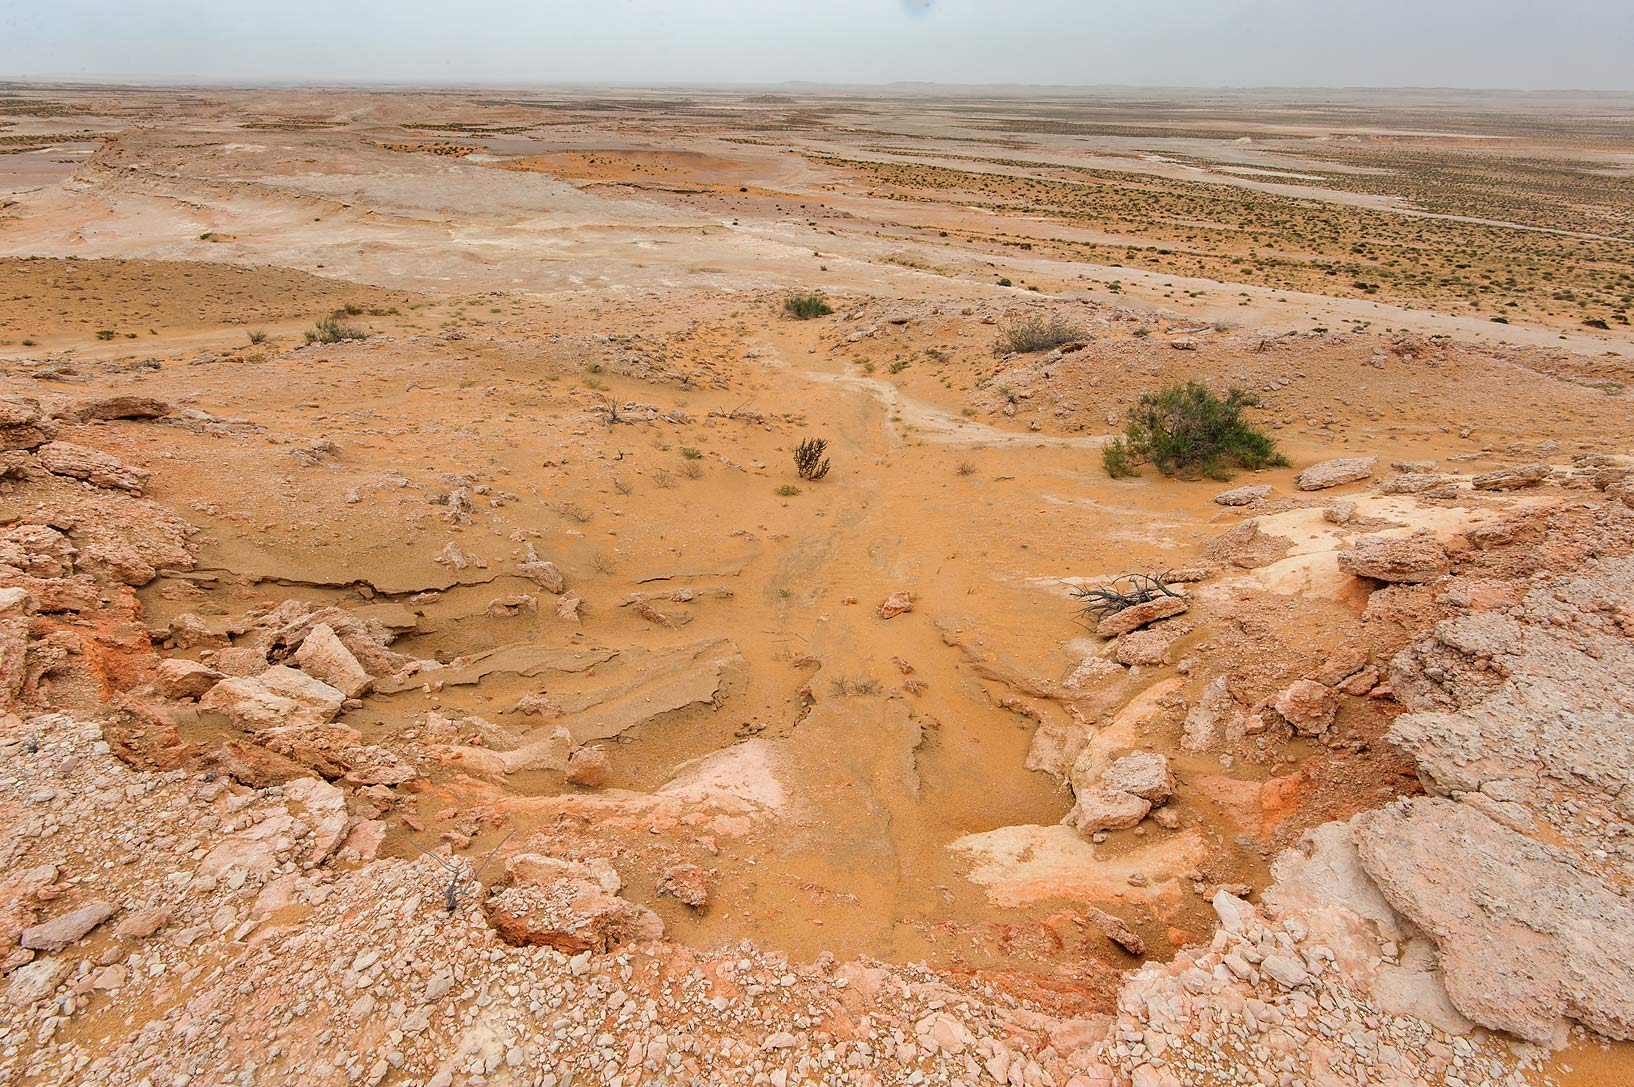 Washed out edge of the plateau of a tabletop hill...Reserve near Abu Samra. Southern Qatar